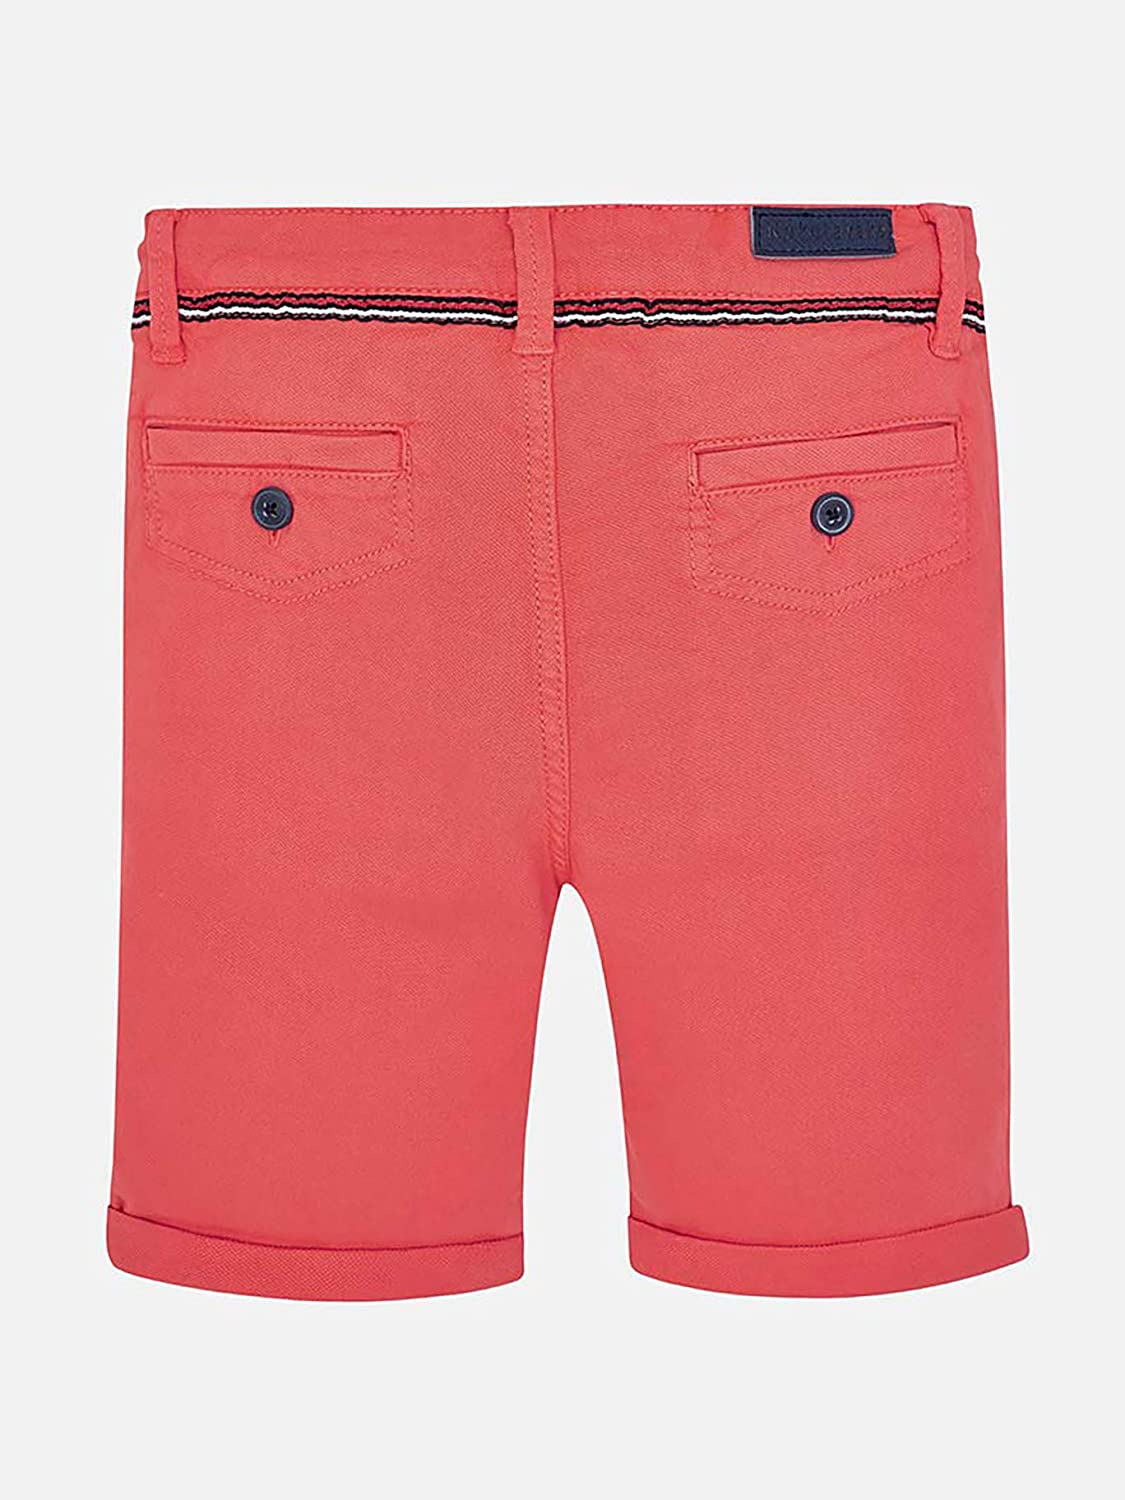 Crab Structured Shorts for Boys 6219 Mayoral